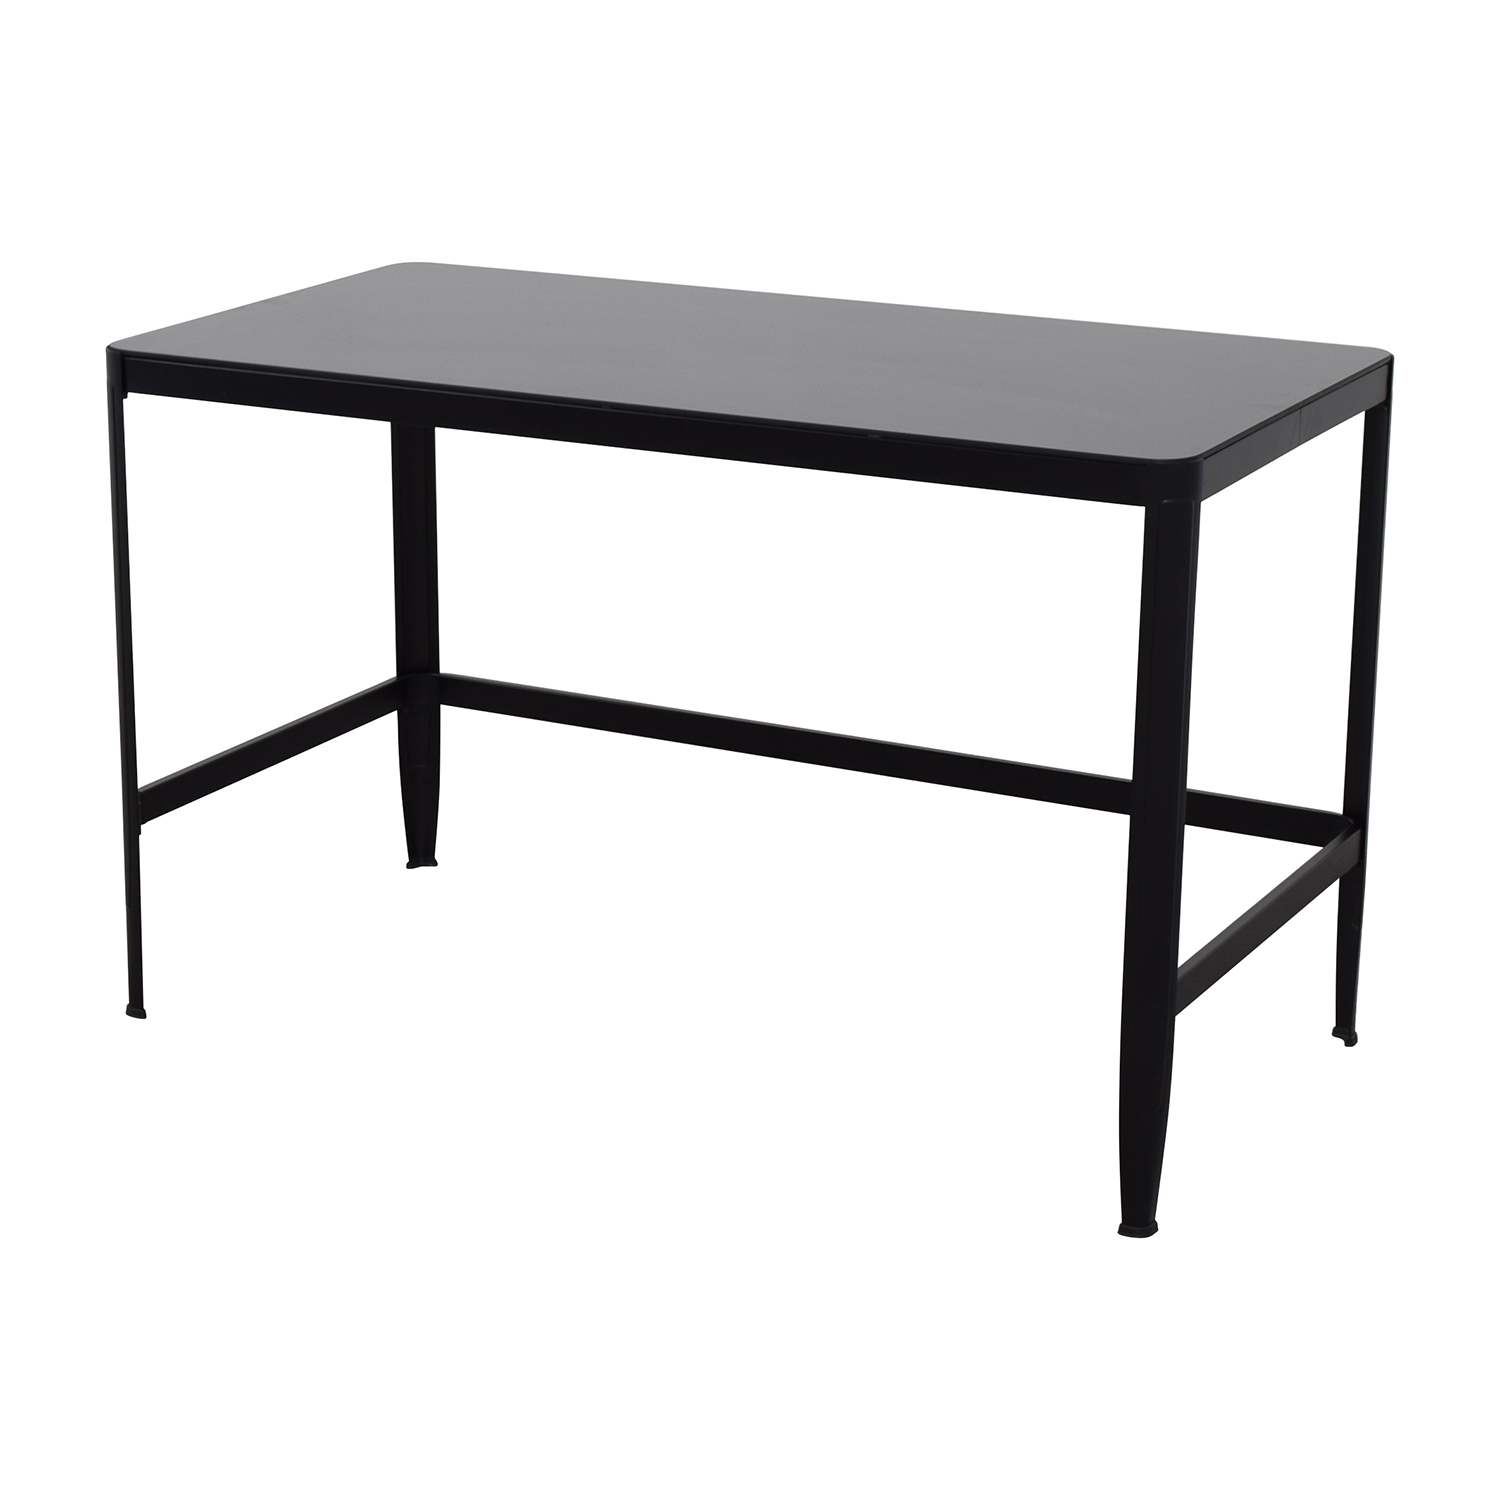 Modern Black Metal Table with Glass Top Tables